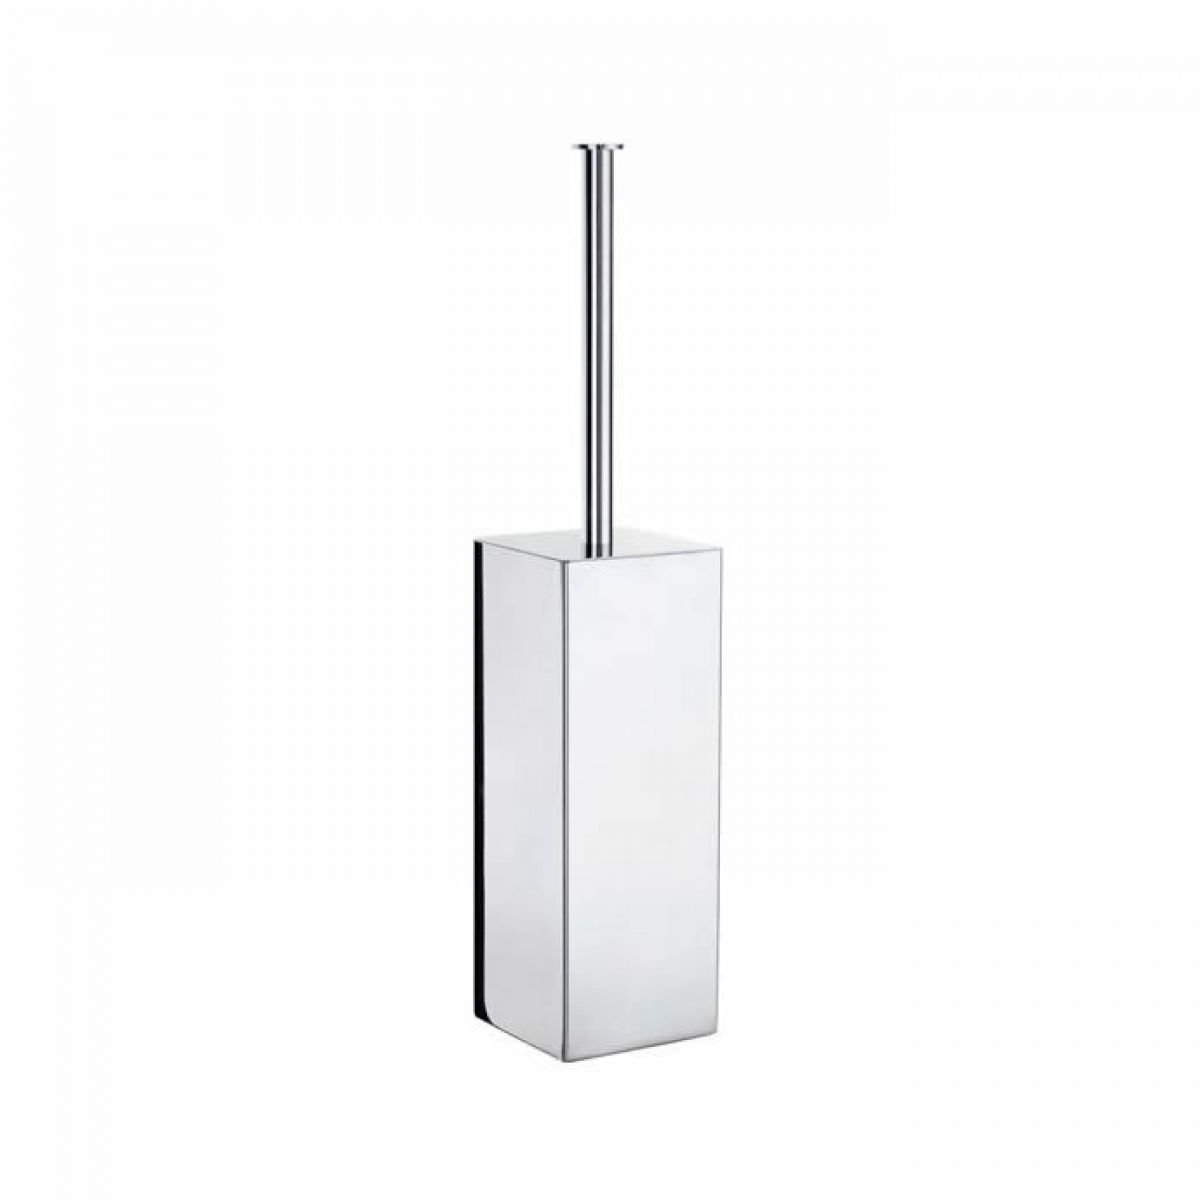 smedbo outline lite square toilet brush holder  uk bathrooms - smedbo outline lite square toilet brush holder